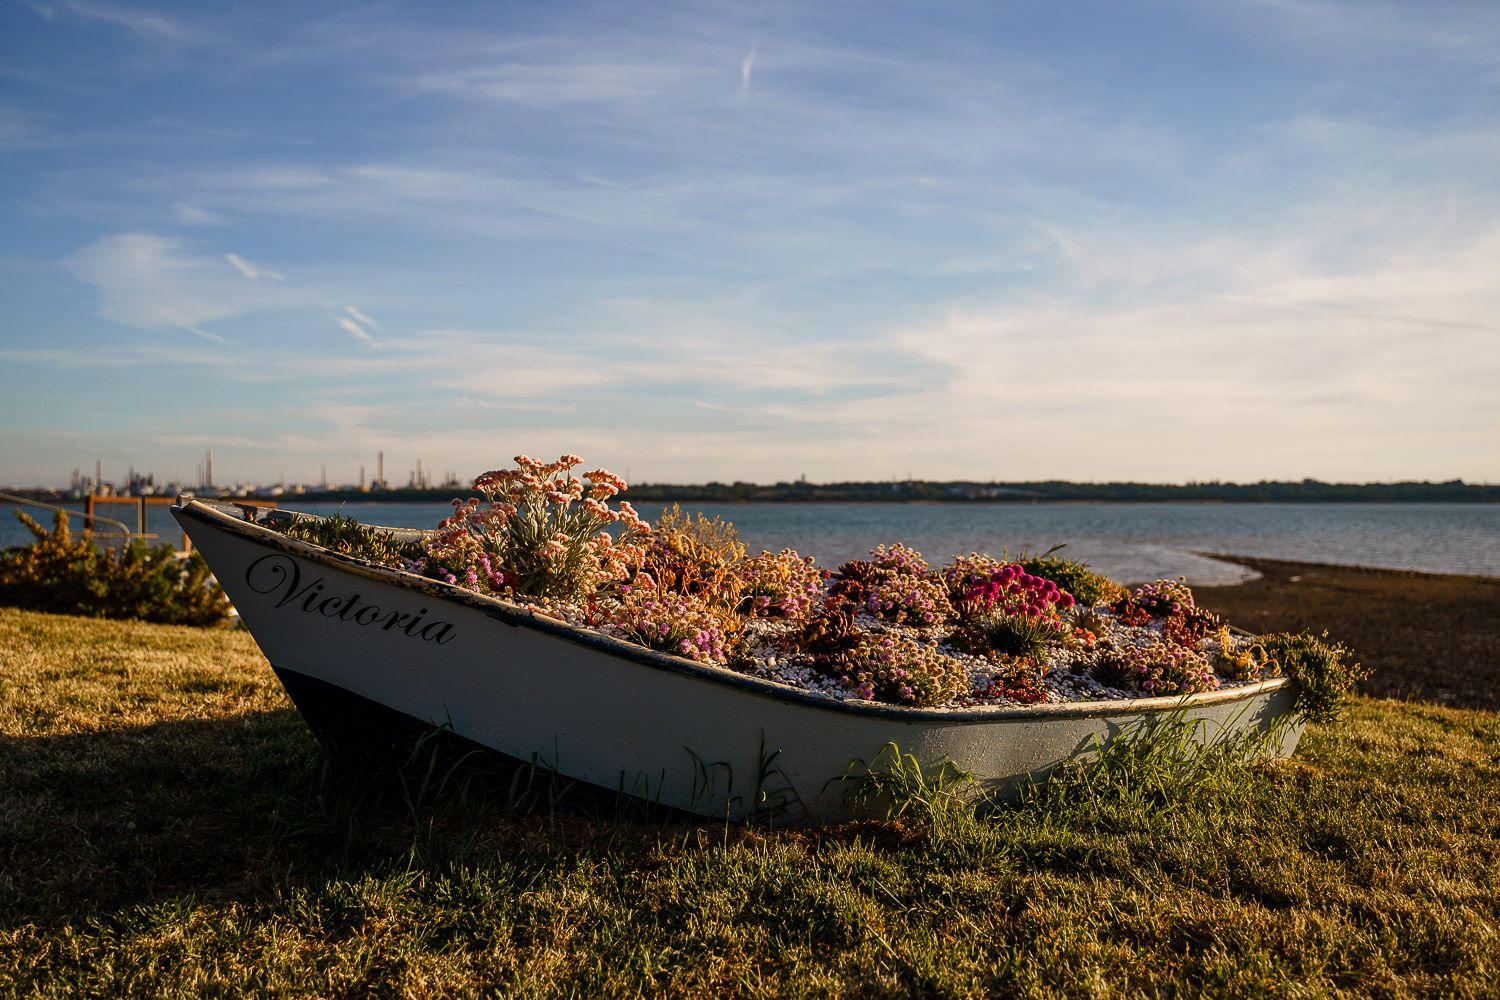 A row boat on the grass in front of the sea full of flowers.